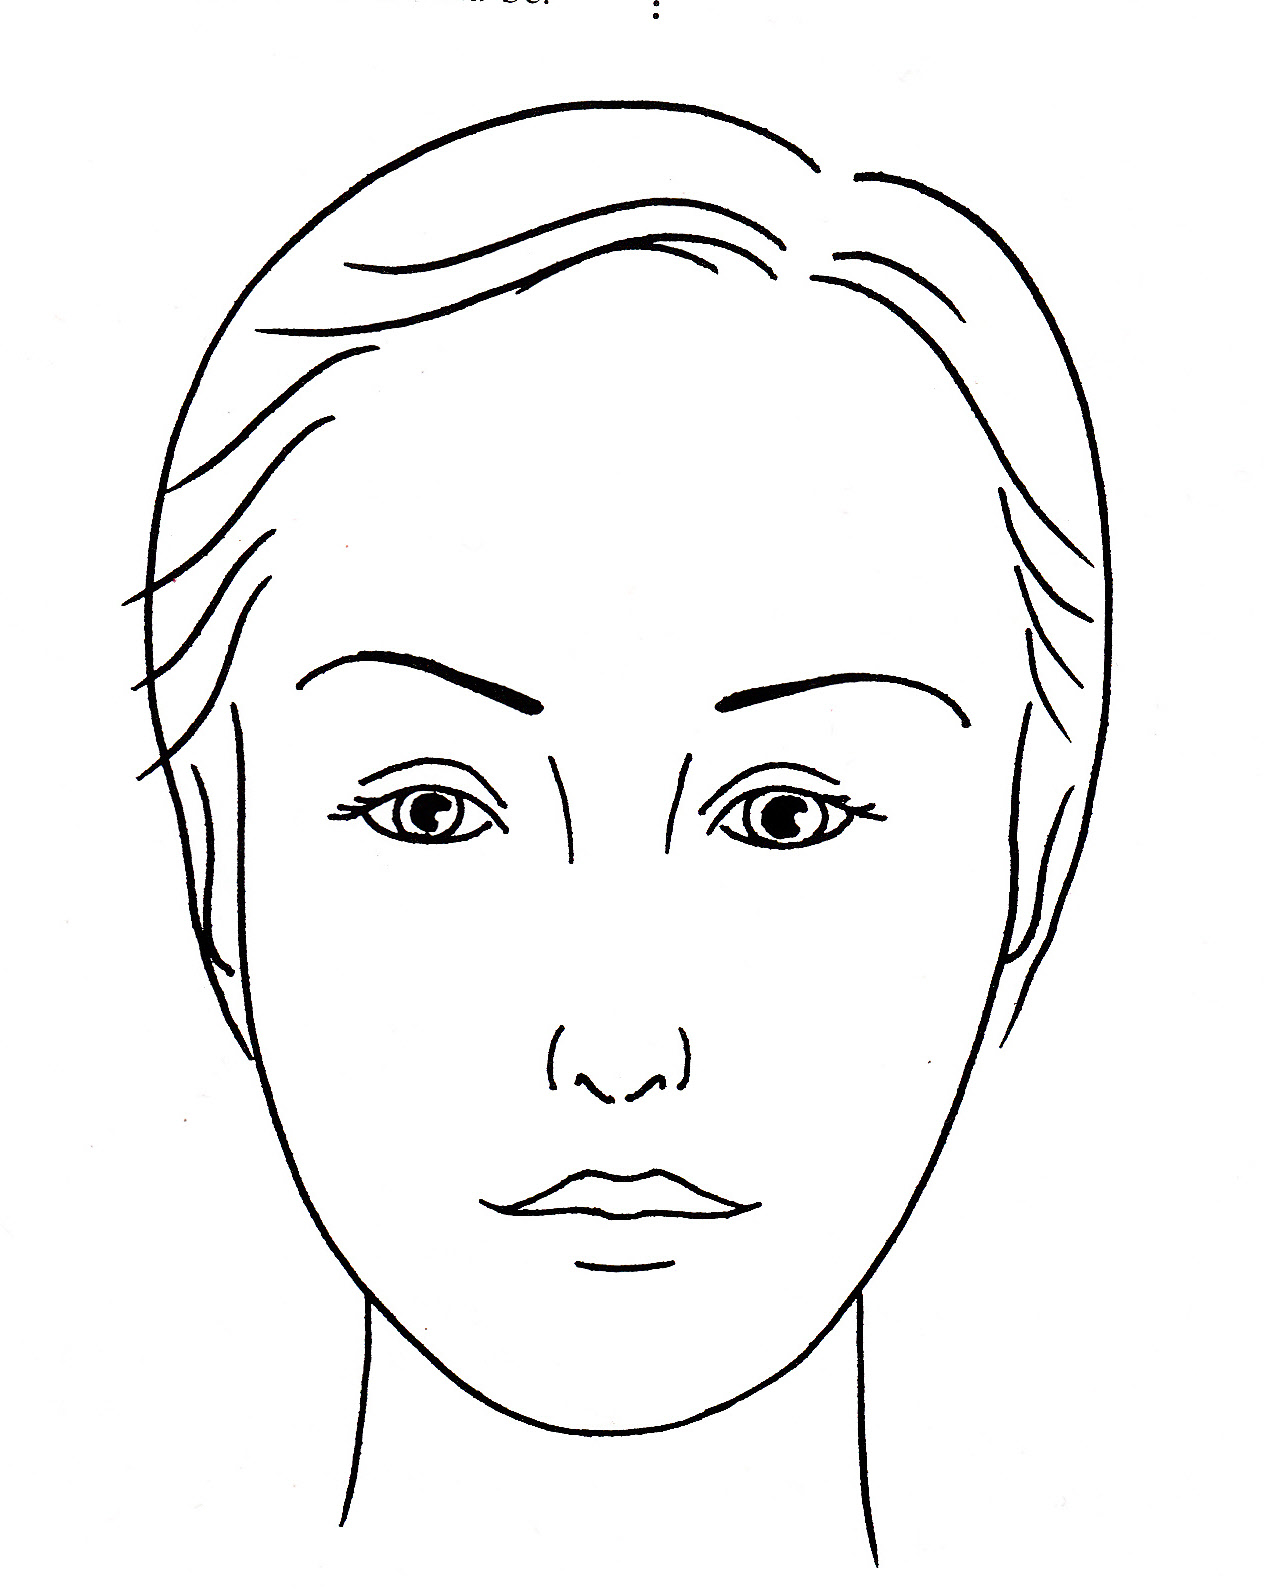 blank face diagram botox rangemaster cooker hood wiring makeup artist coloring pages